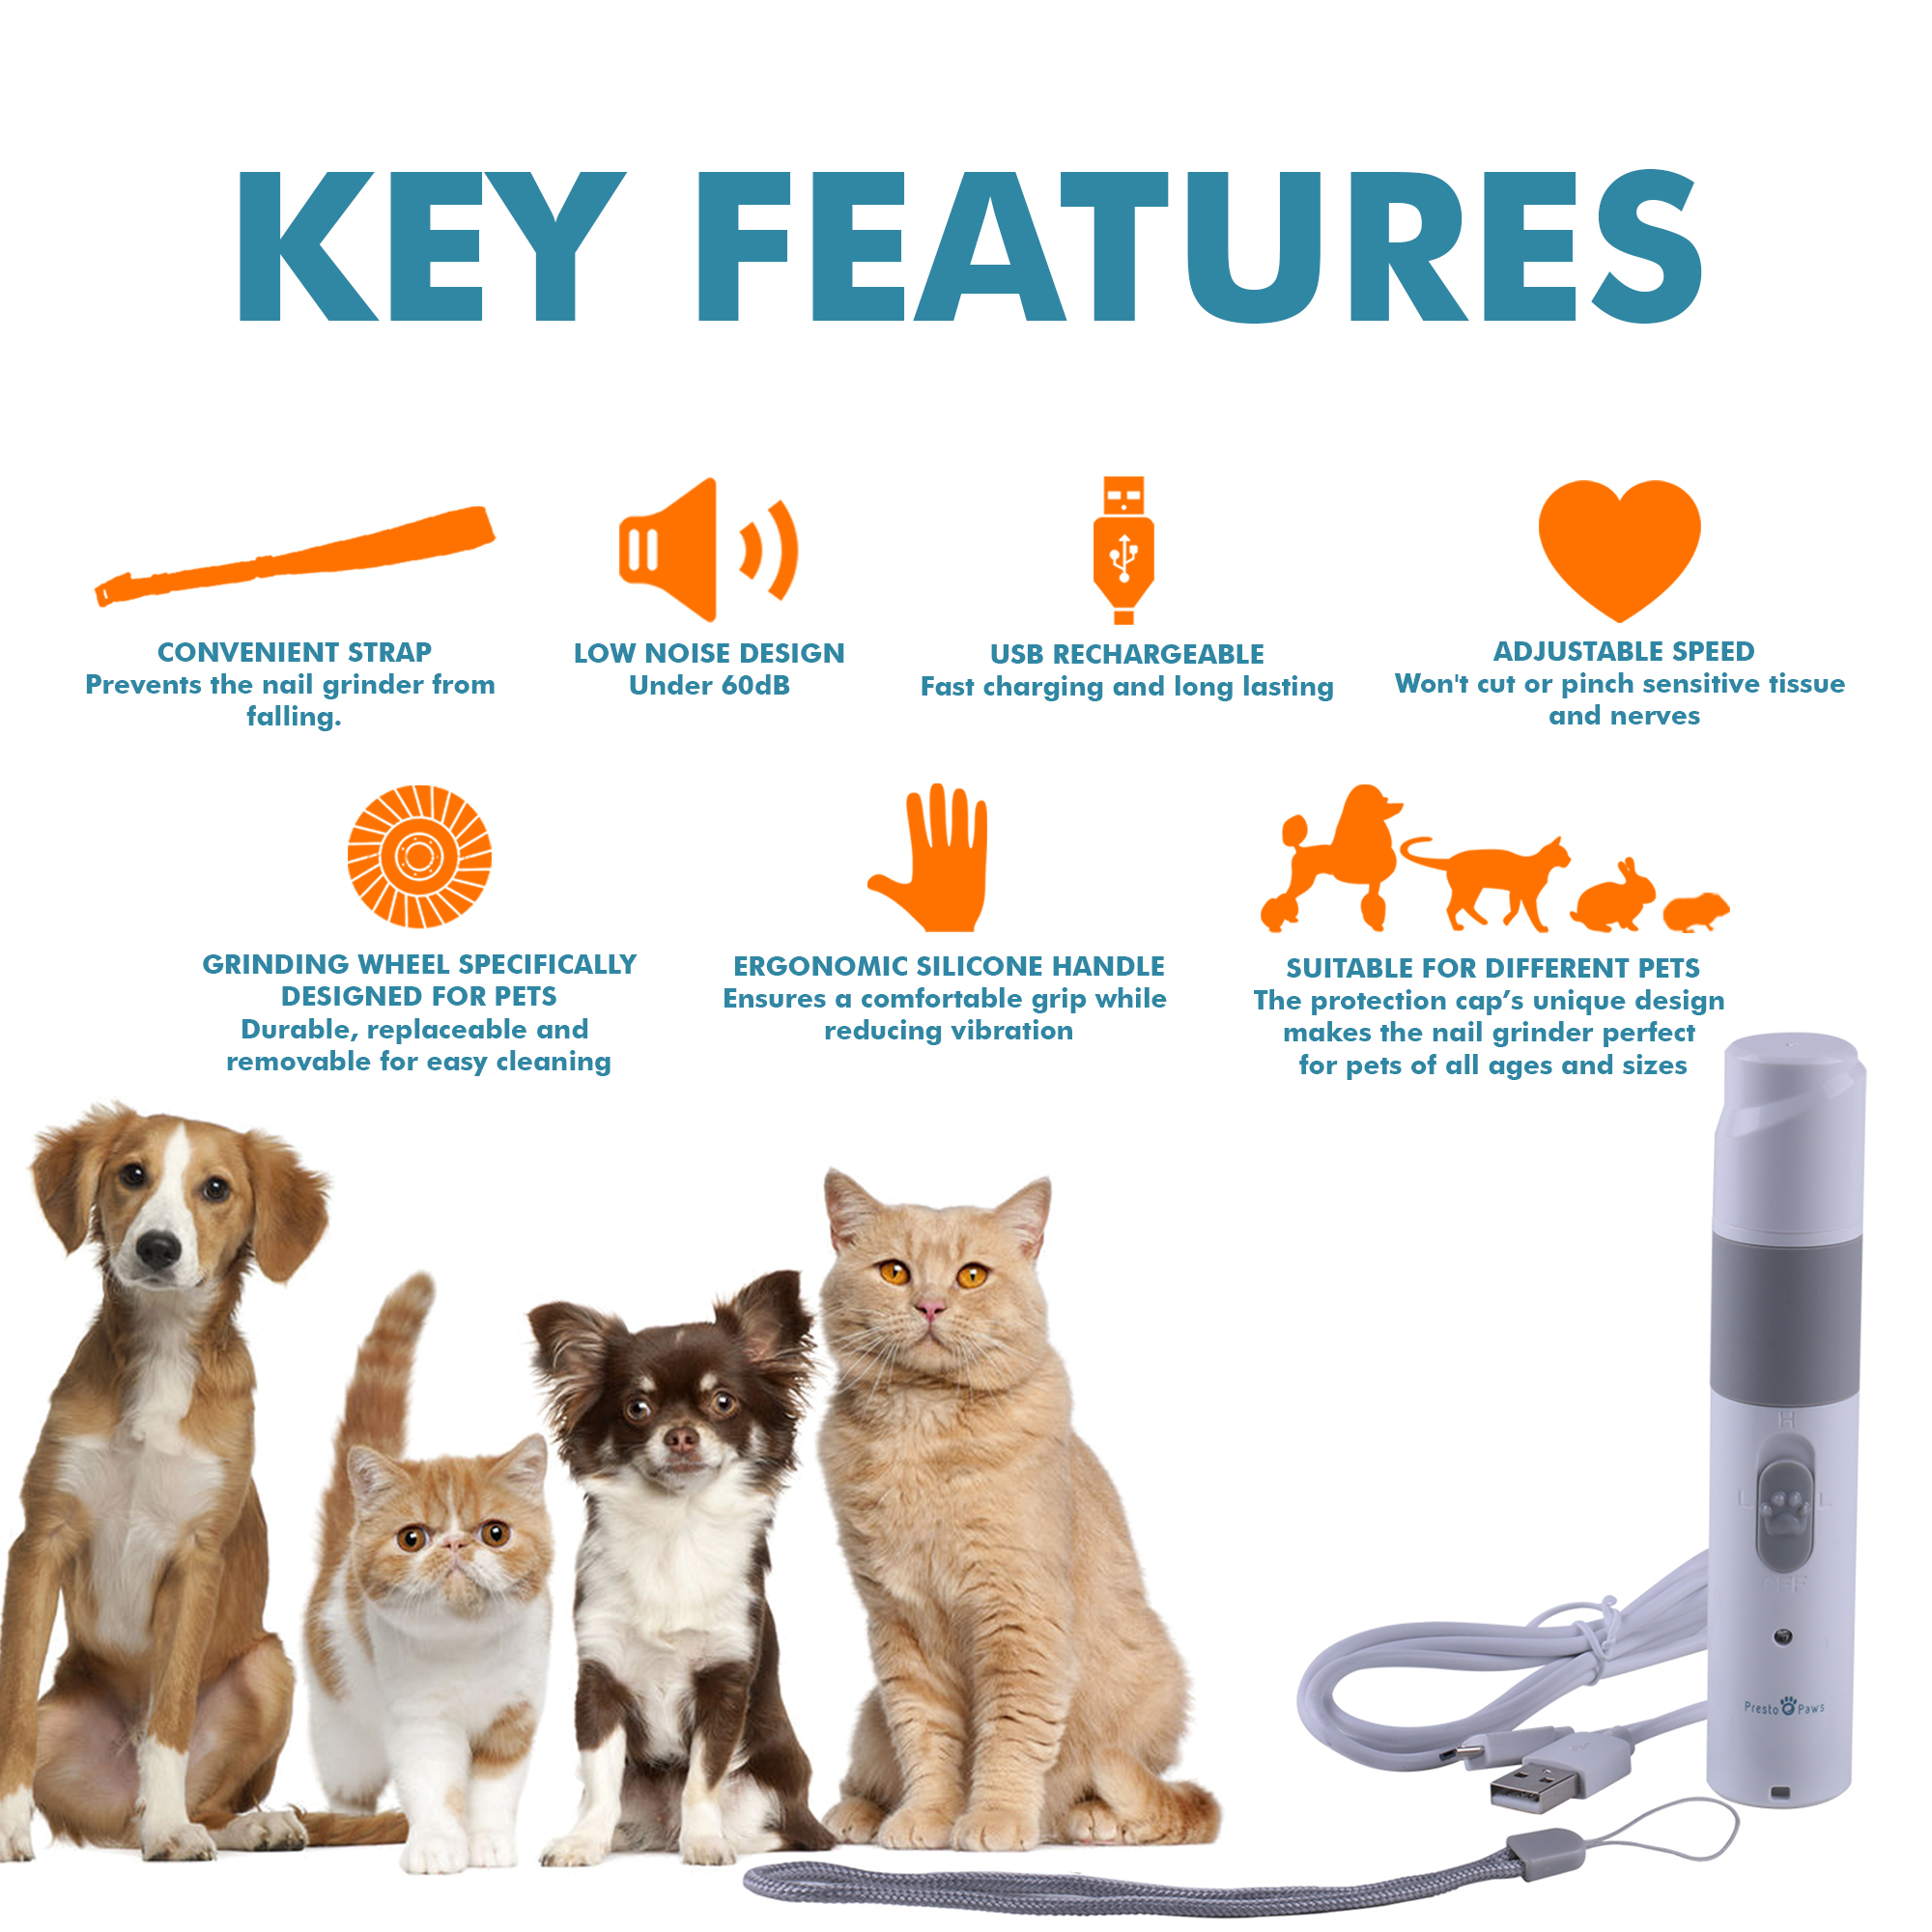 Presto Paws Nail Grinder Key Features